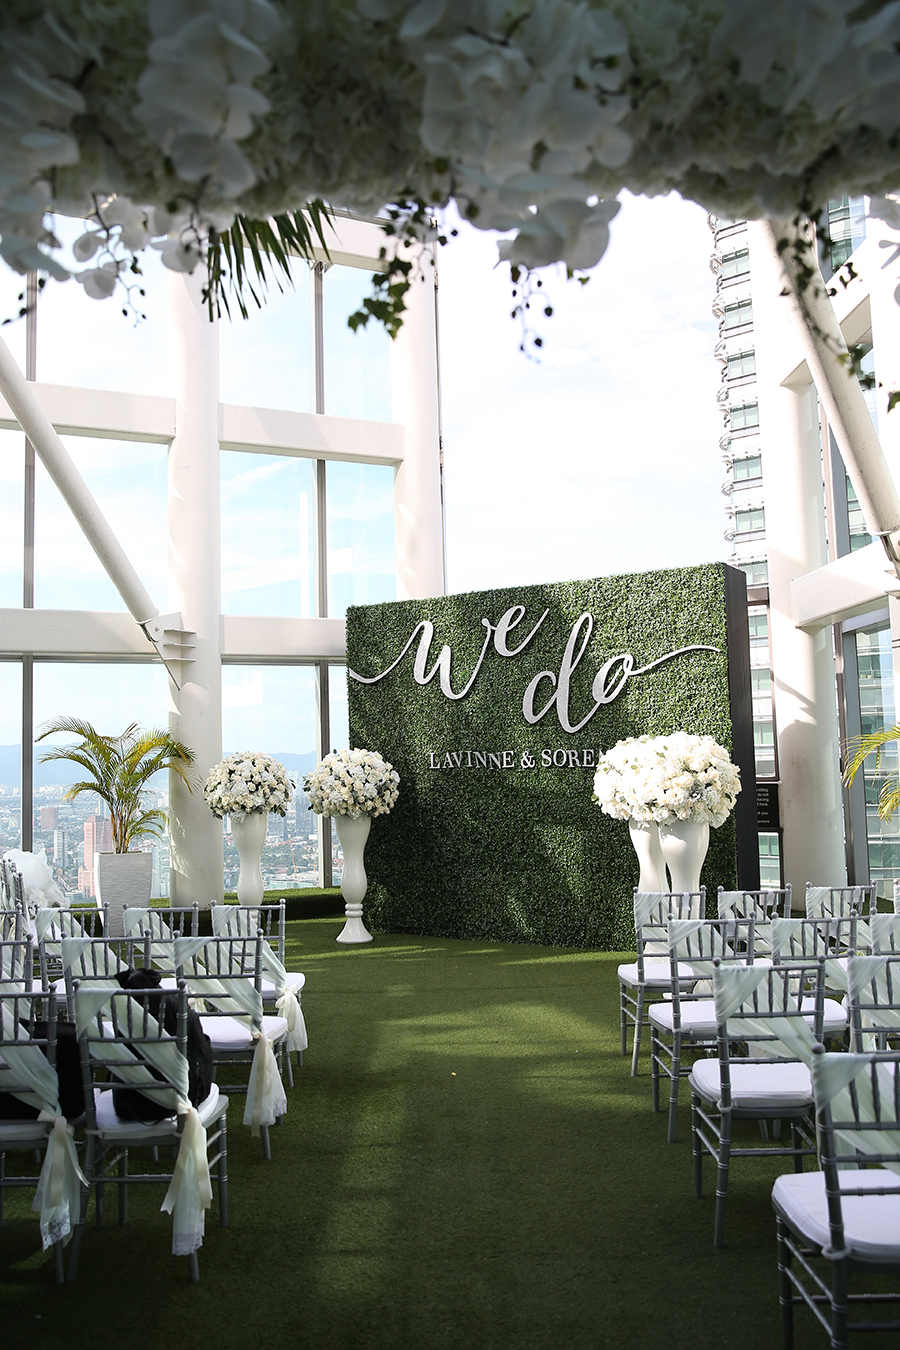 The wedding scoop decor and flowers by wishing tree photography by axioo via soren and lavinnes breathtaking wedding on the 57 floor of the petronas towers junglespirit Choice Image